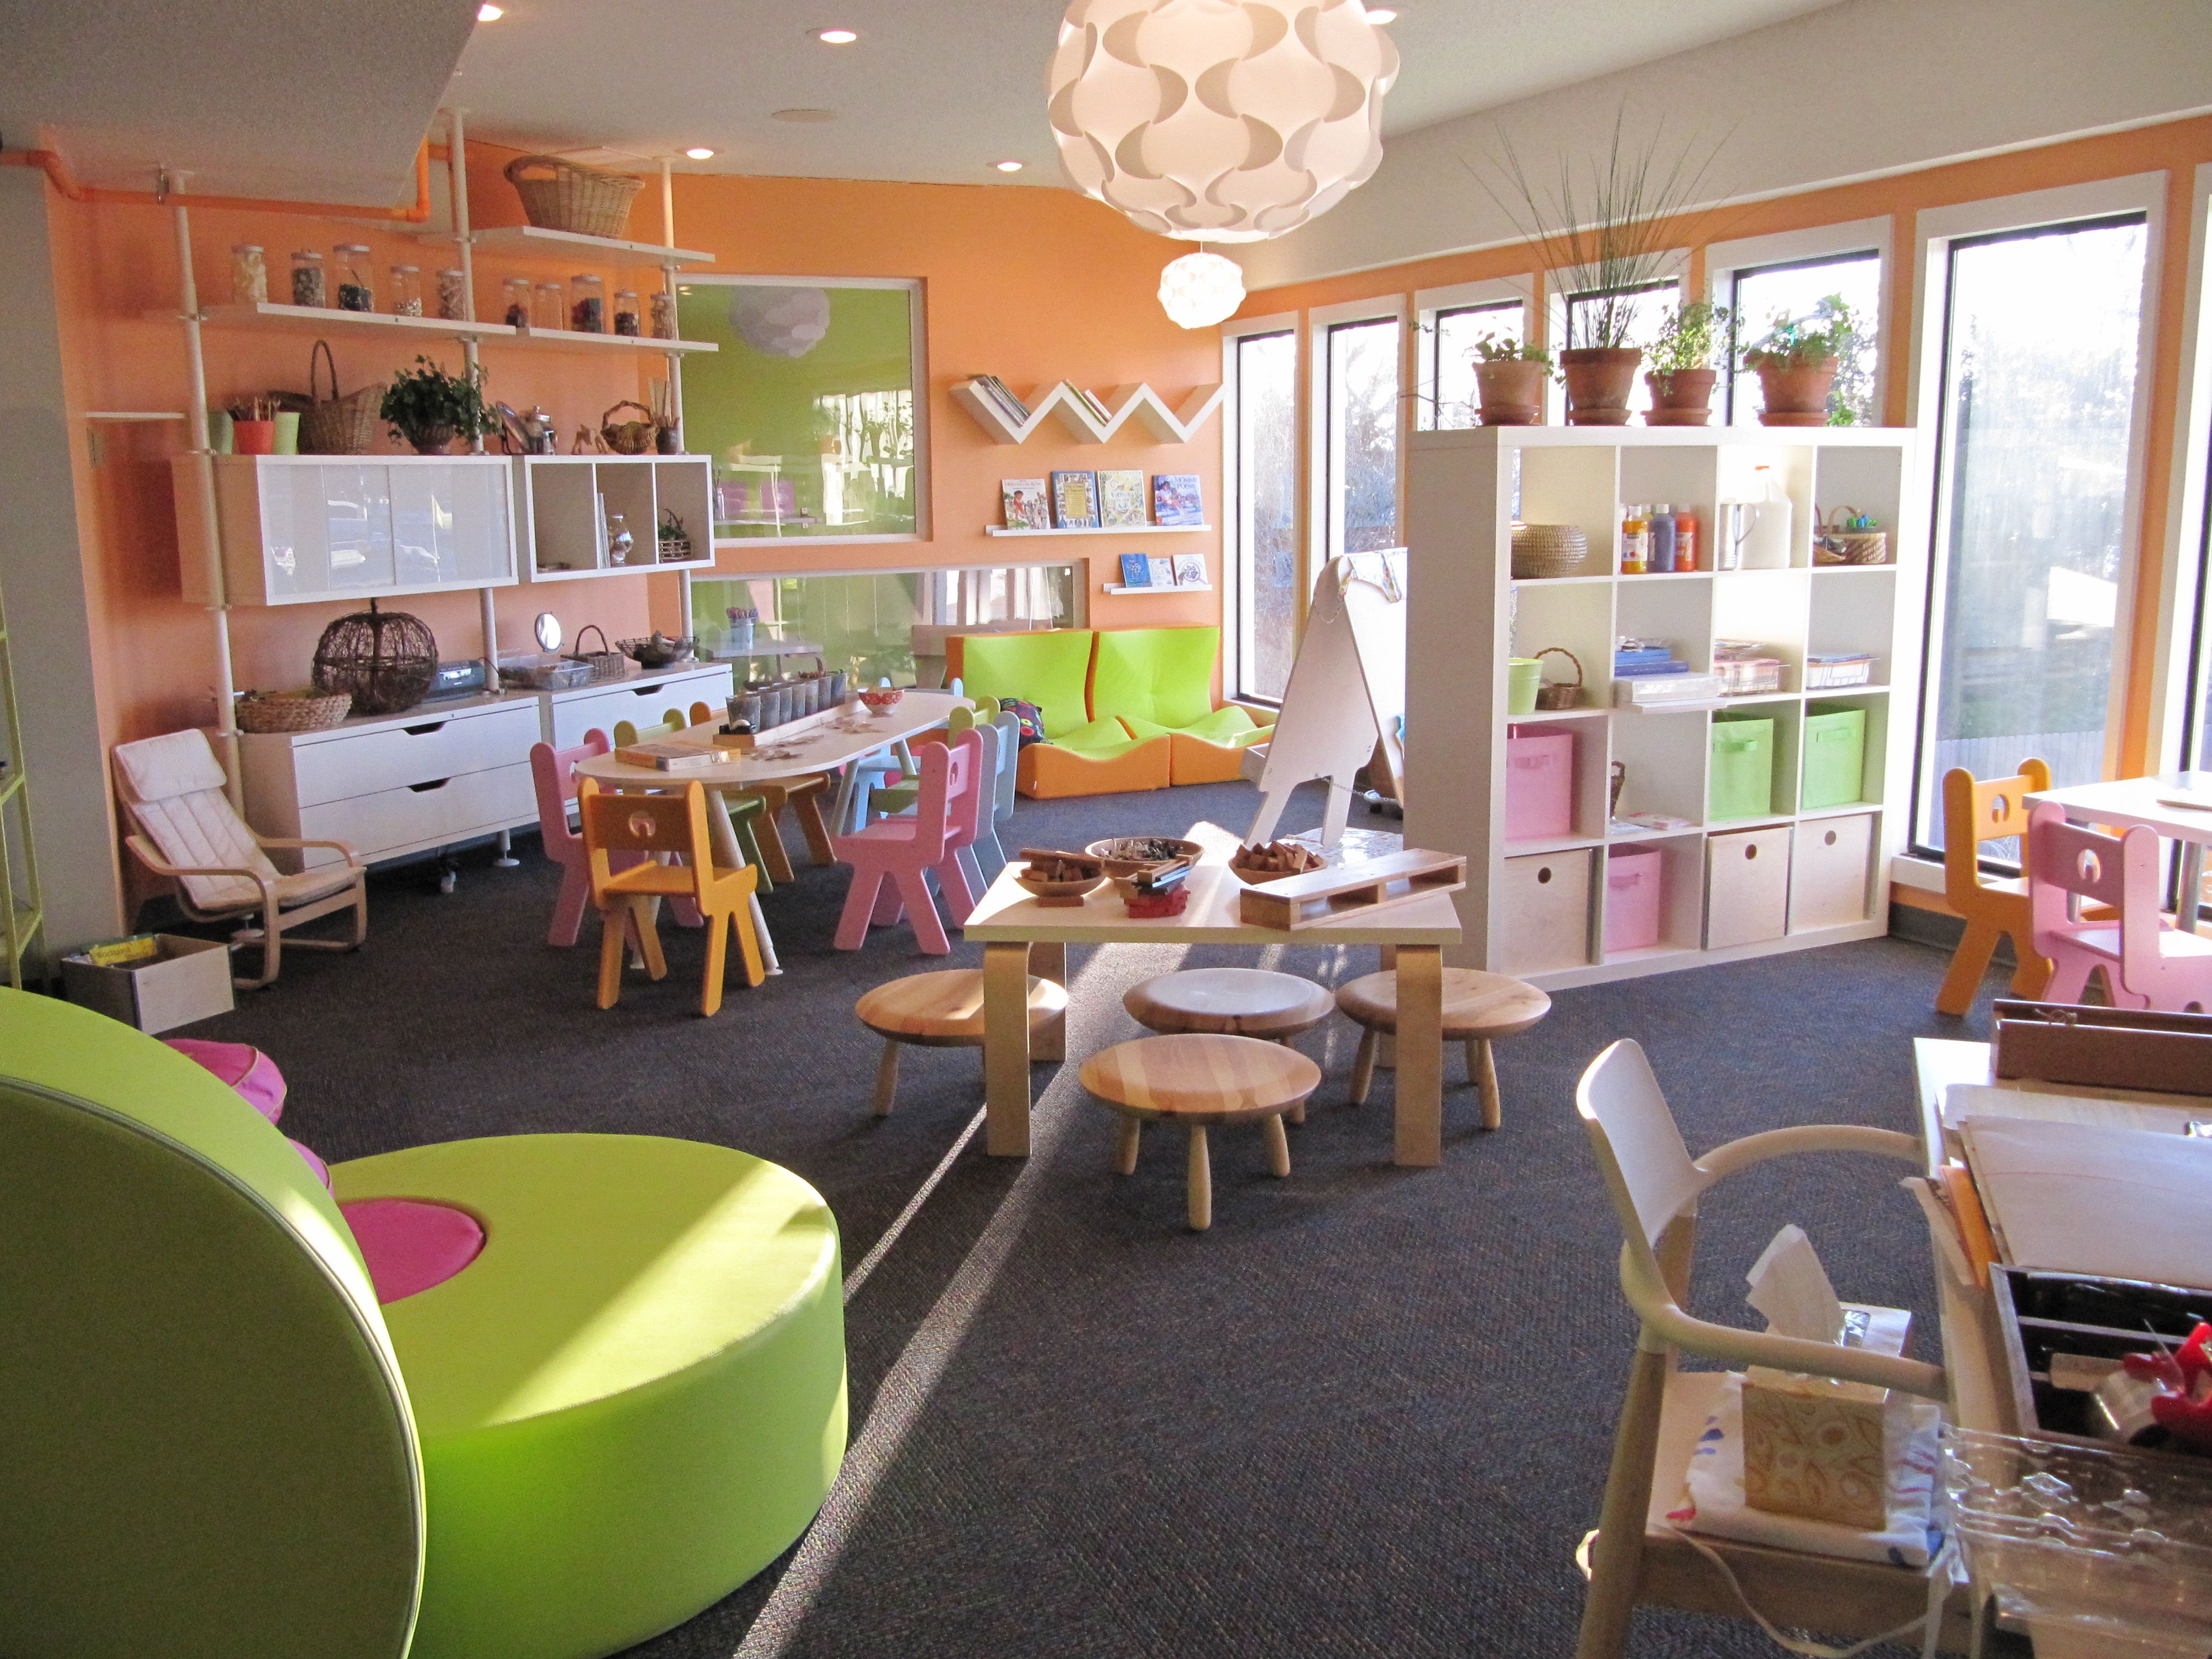 Classroom Environment Design Theory : My own year old classroom at bambini creativi in